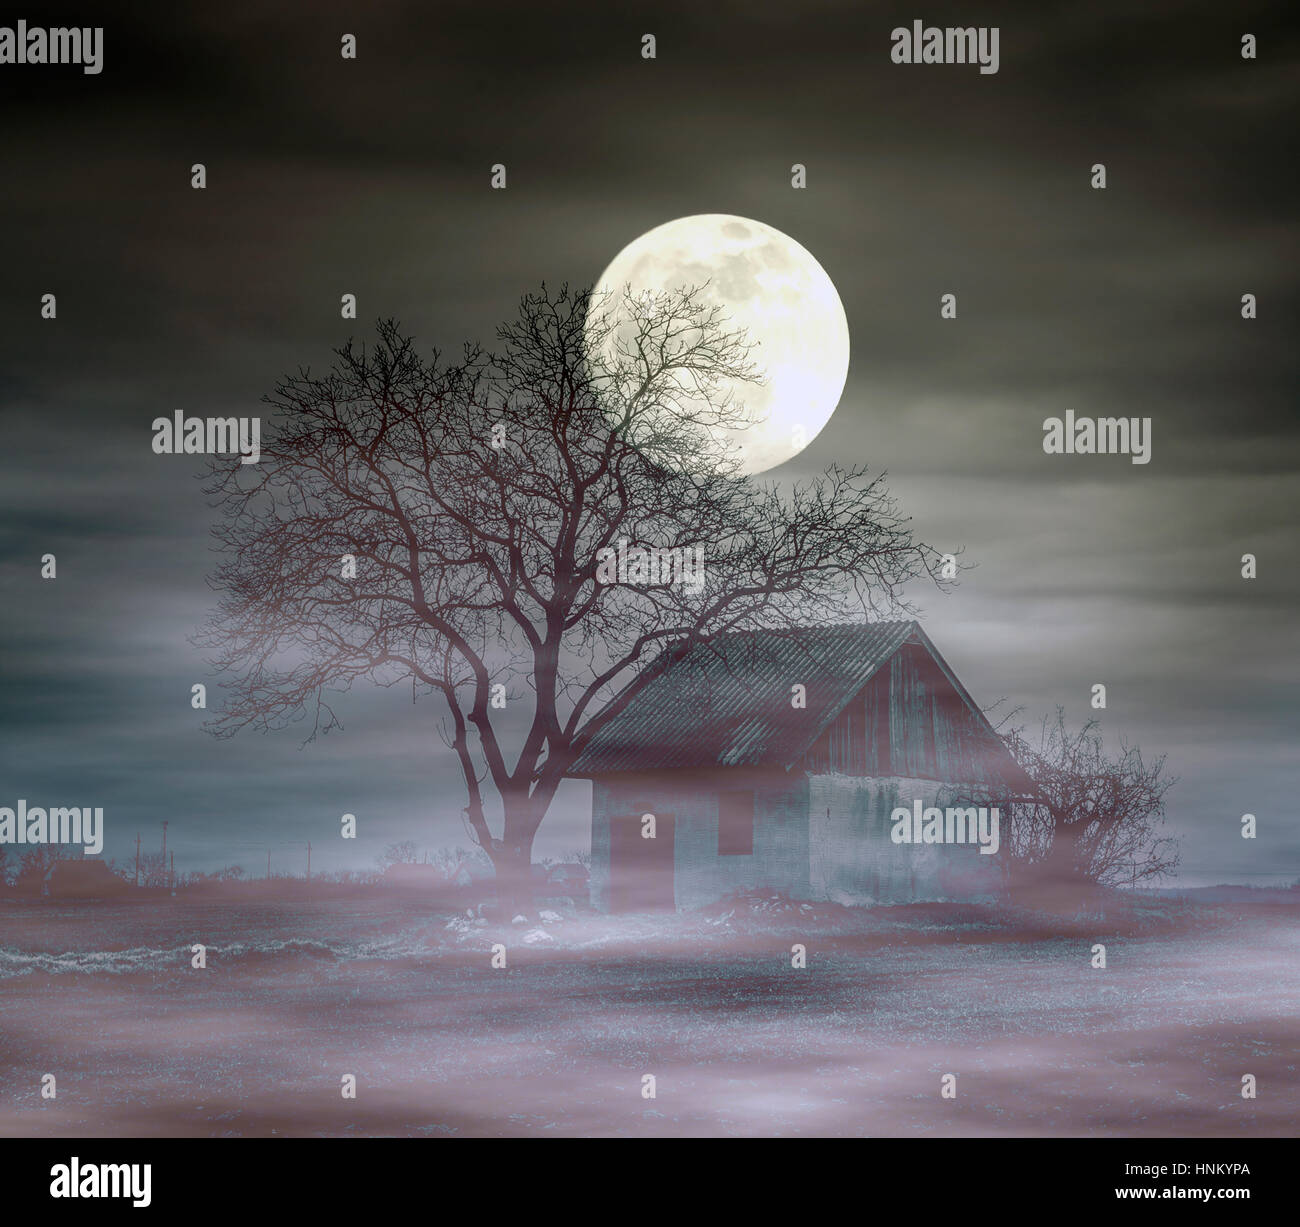 Spooky ghost house at night - Stock Image